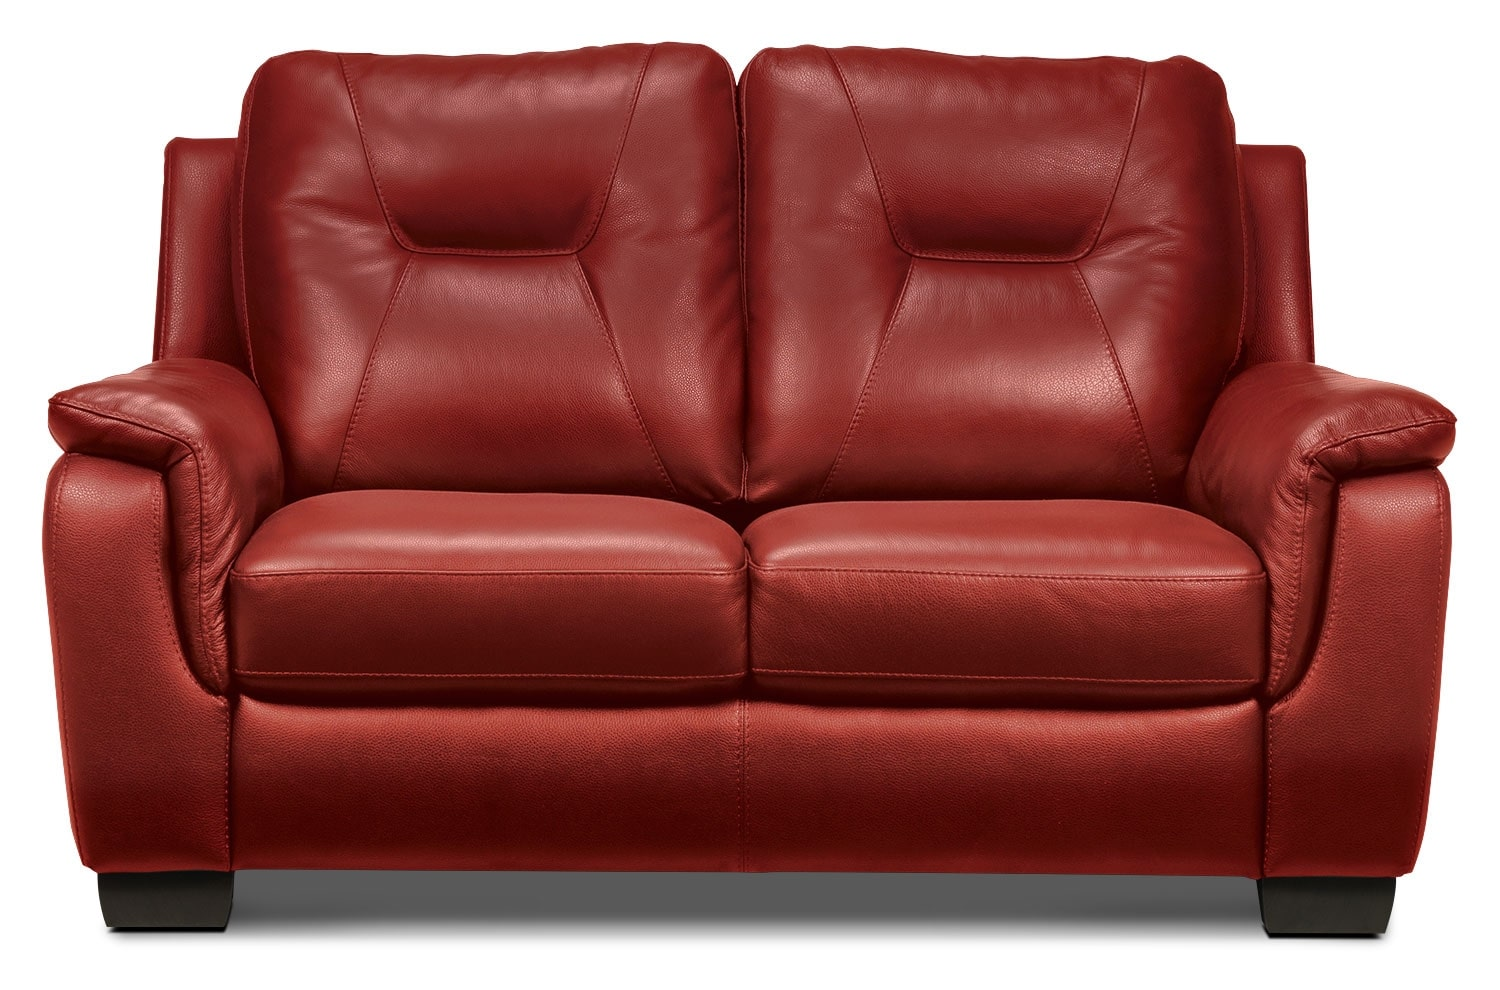 Living Room Furniture - Dalia Loveseat - Red